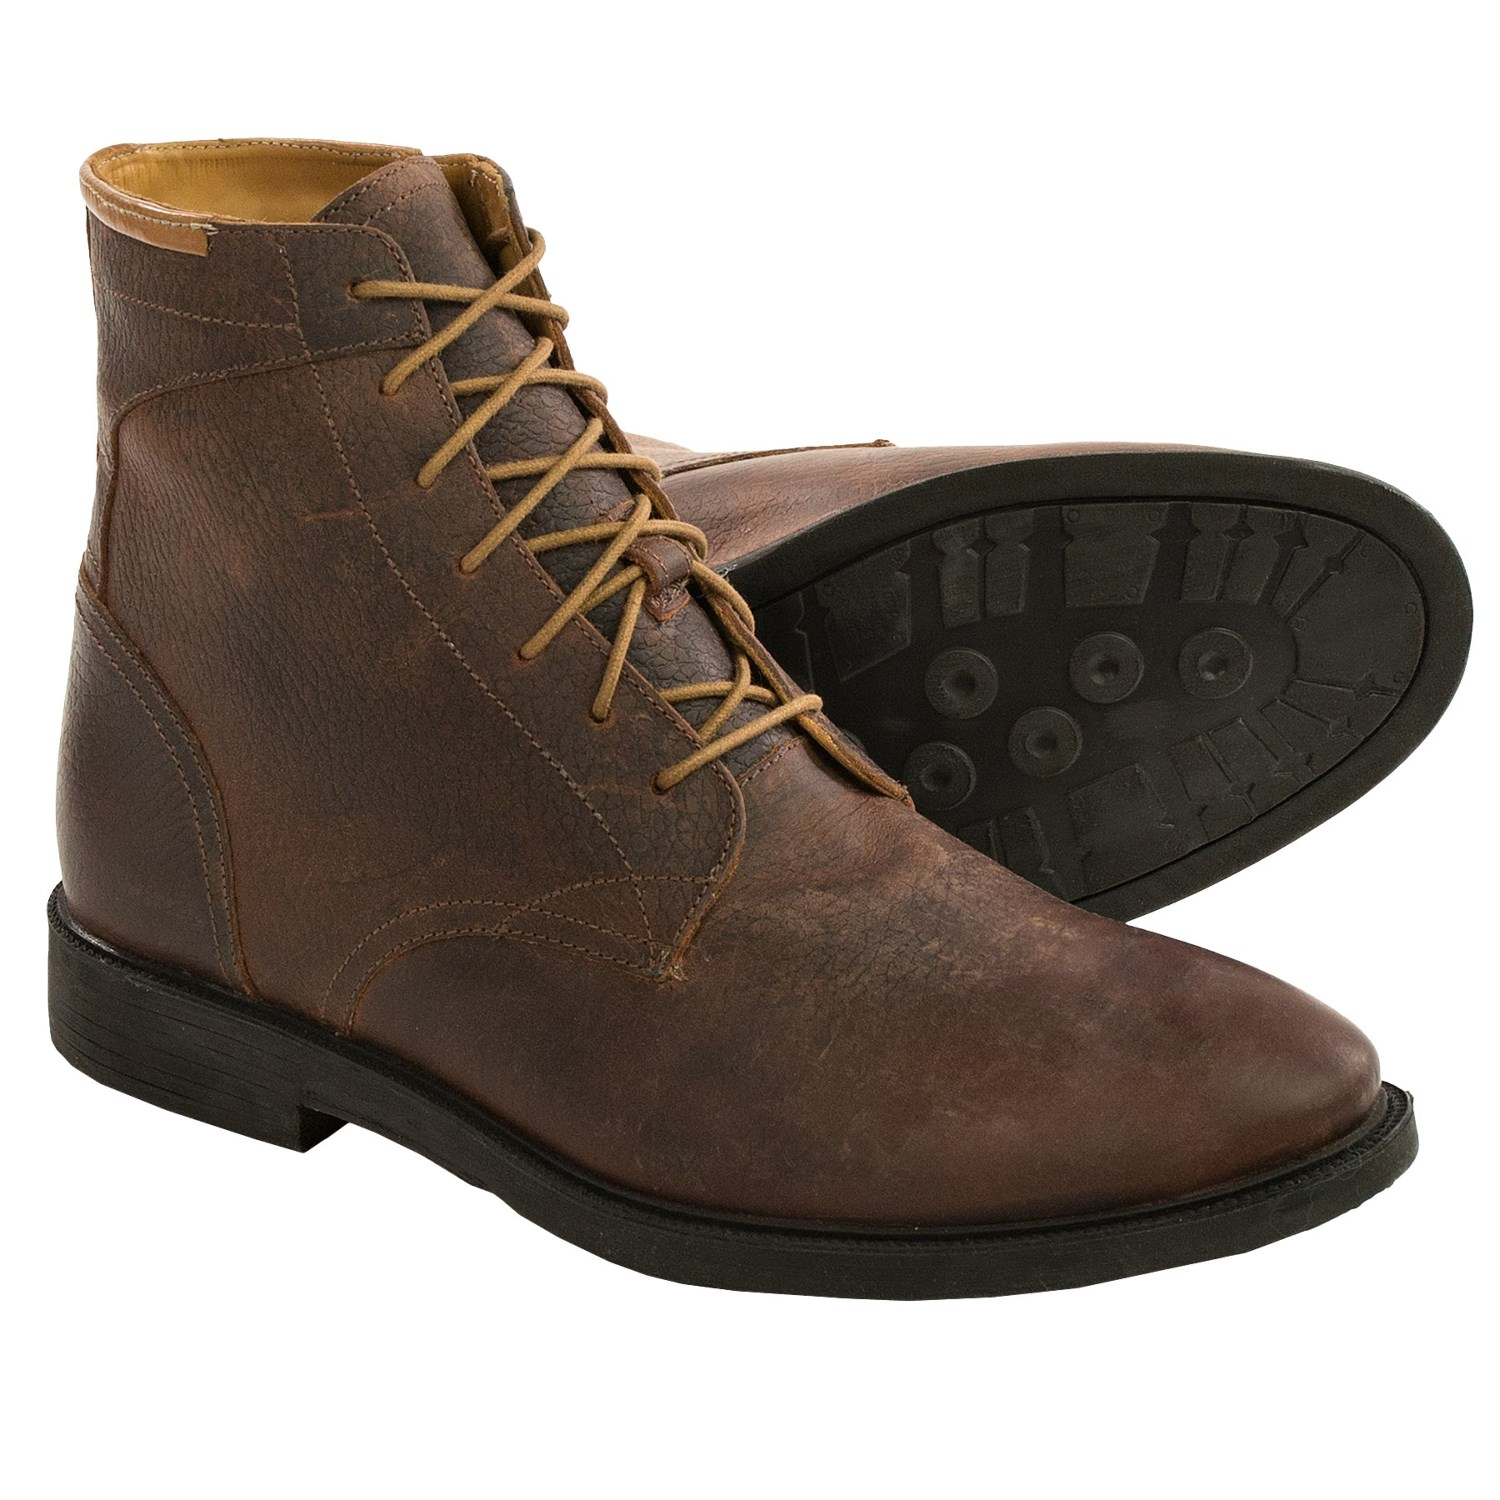 J Shoes Barbican Leather Boots (For Men) - Save 76%